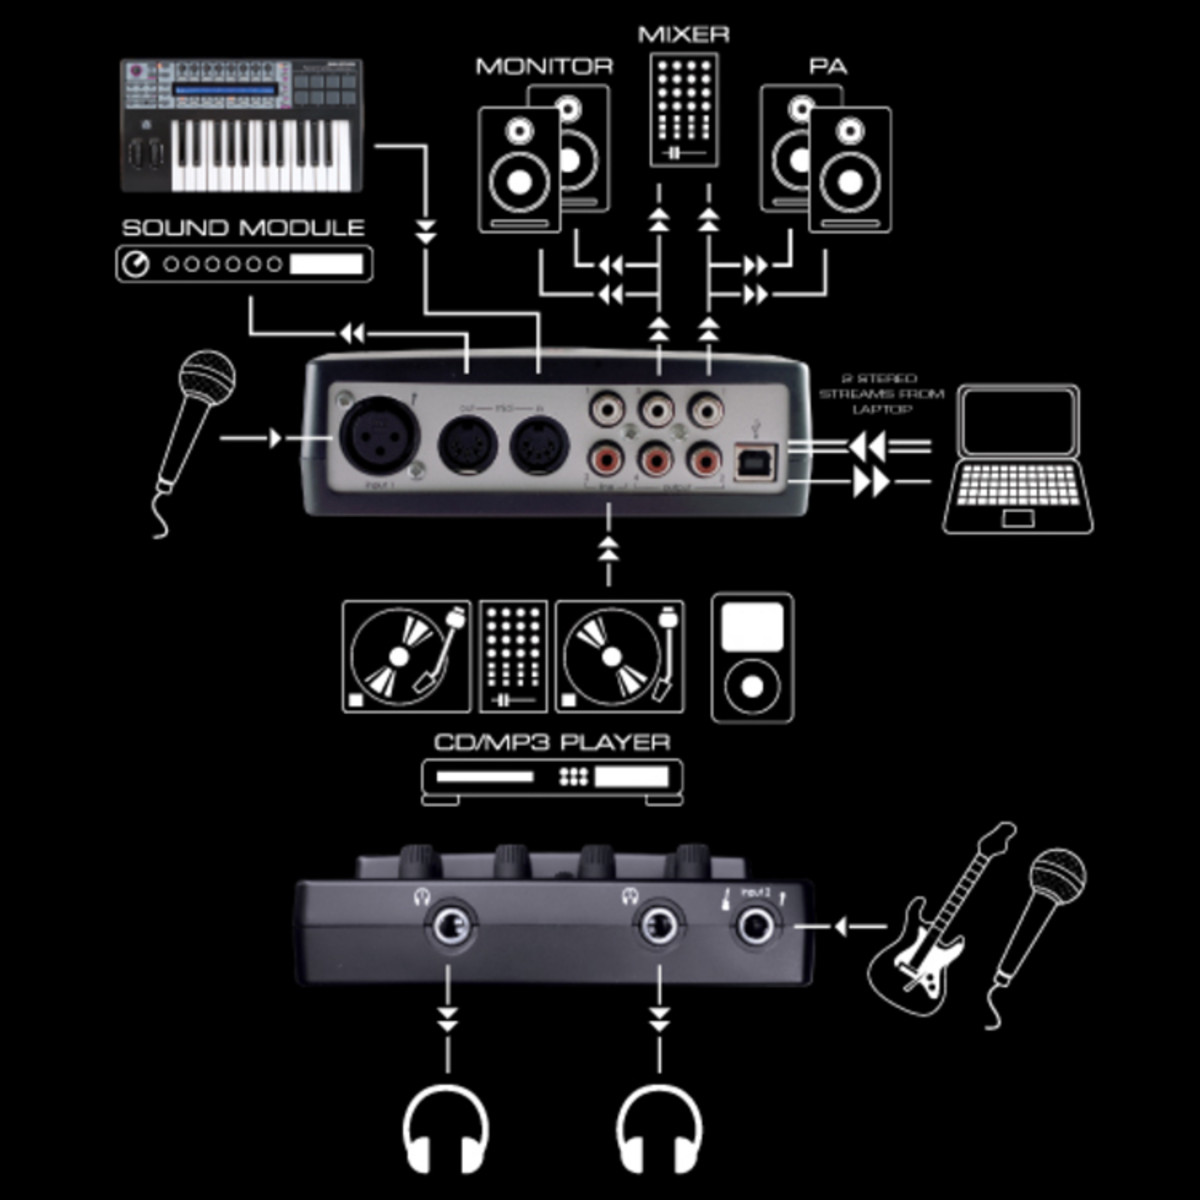 Disc Novation Nio 2 4 Usb Audio Interface At Gear4music Mp3 Player Connection Diagram Connectivity Loading Zoom